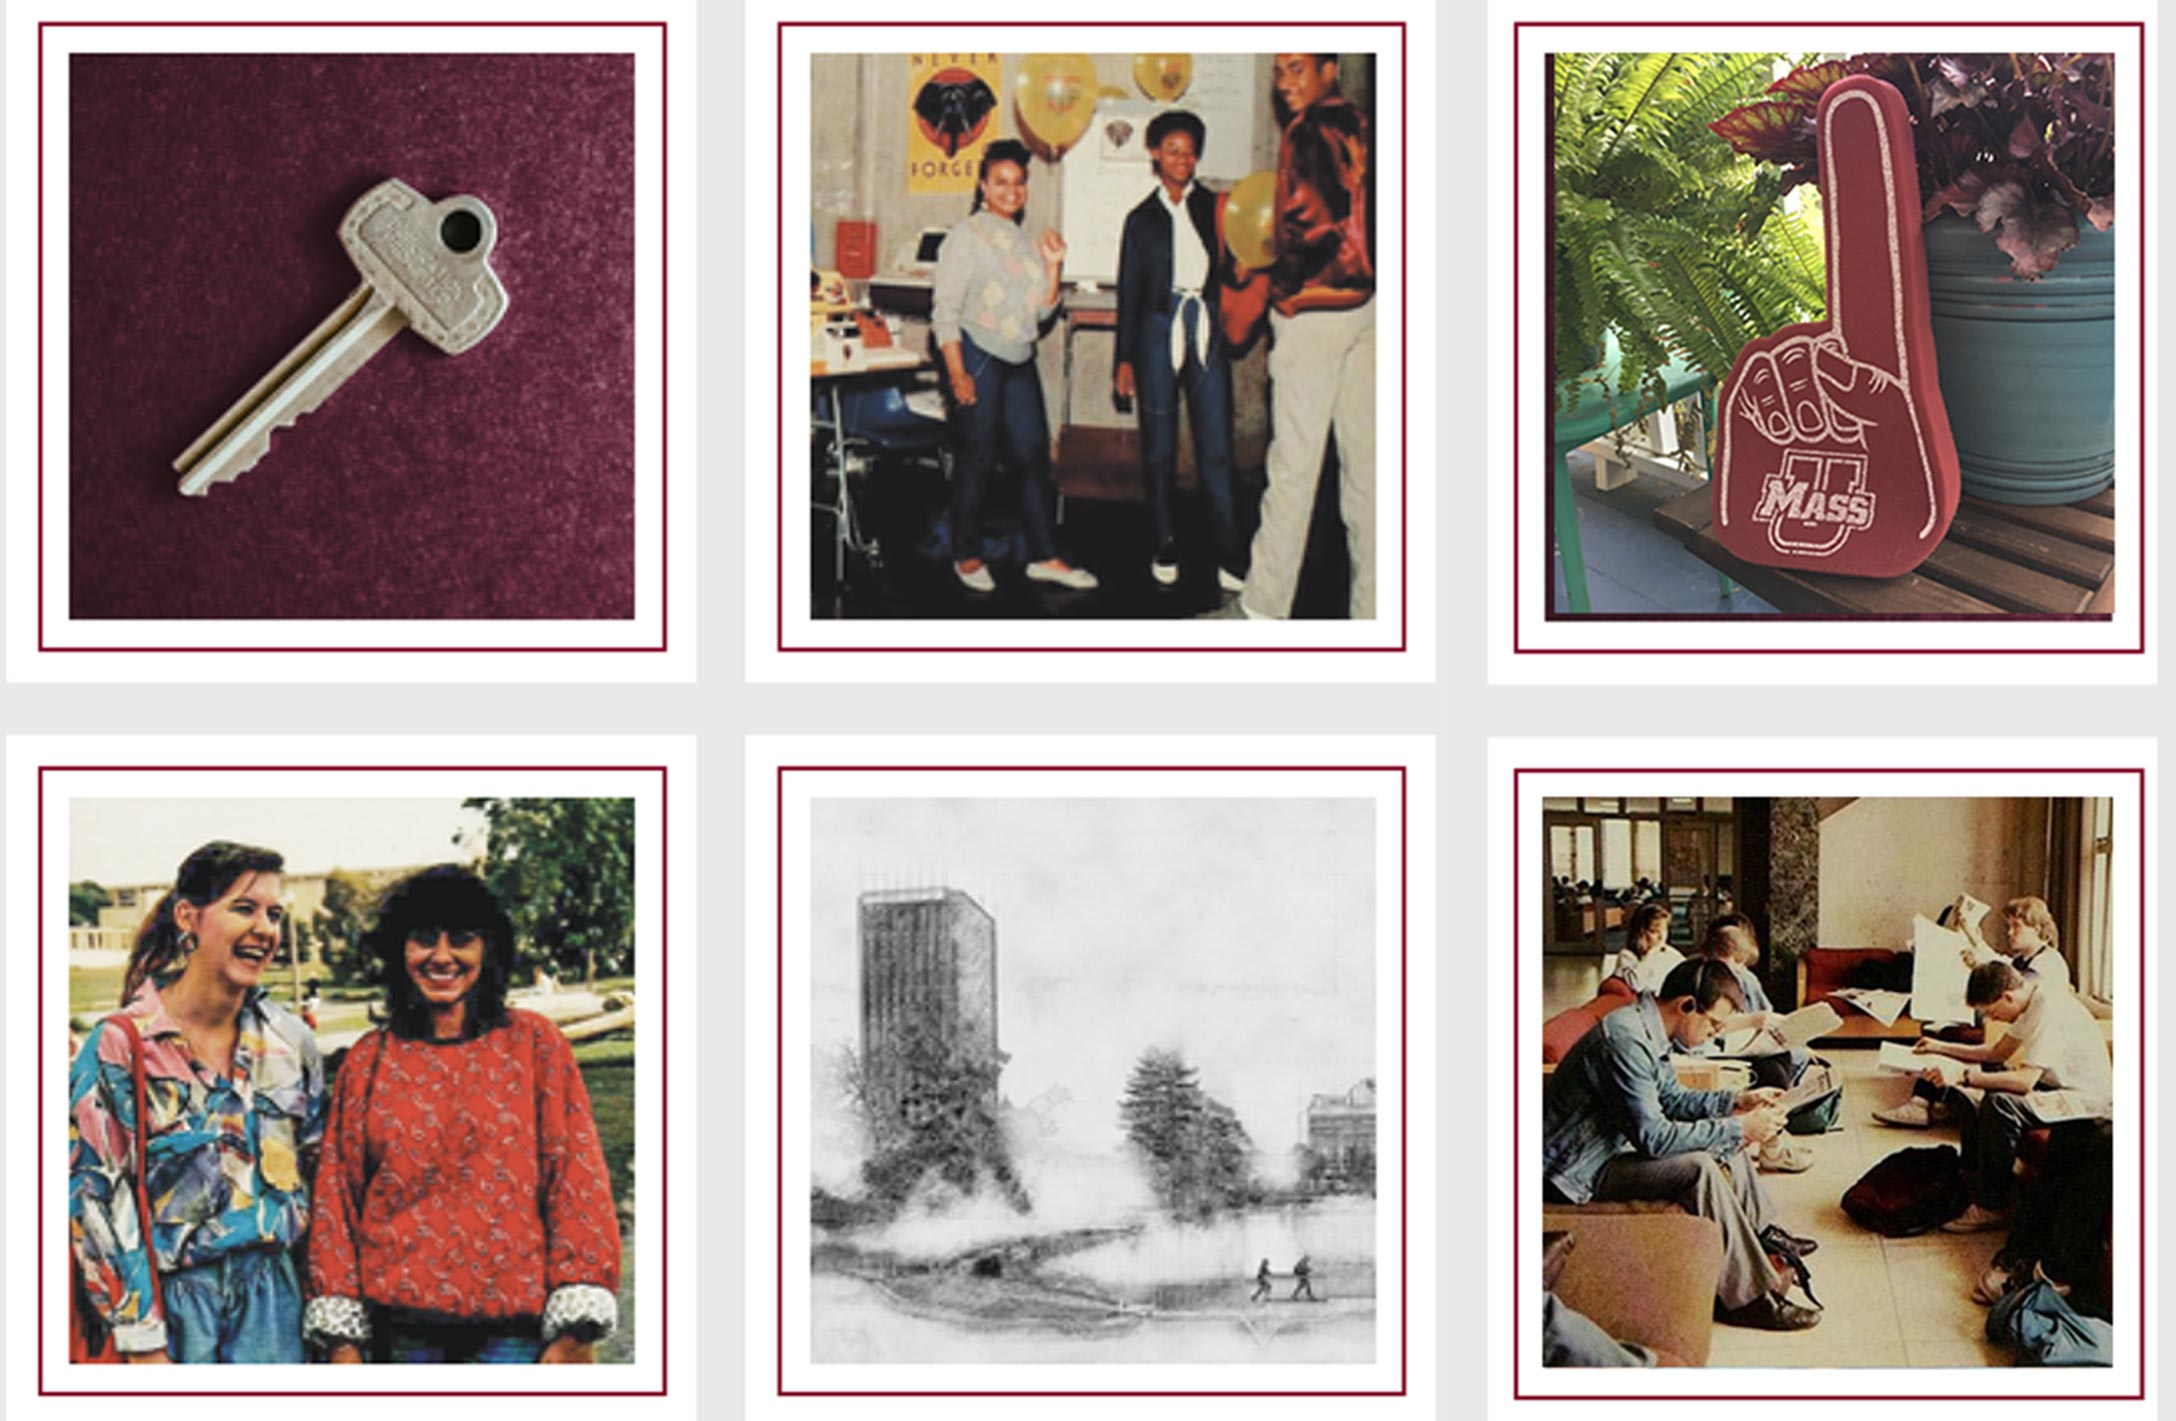 A grid of images showing examples of memorabilia including a key, old photographs, a sketch of campus buildings, and a foam finger.